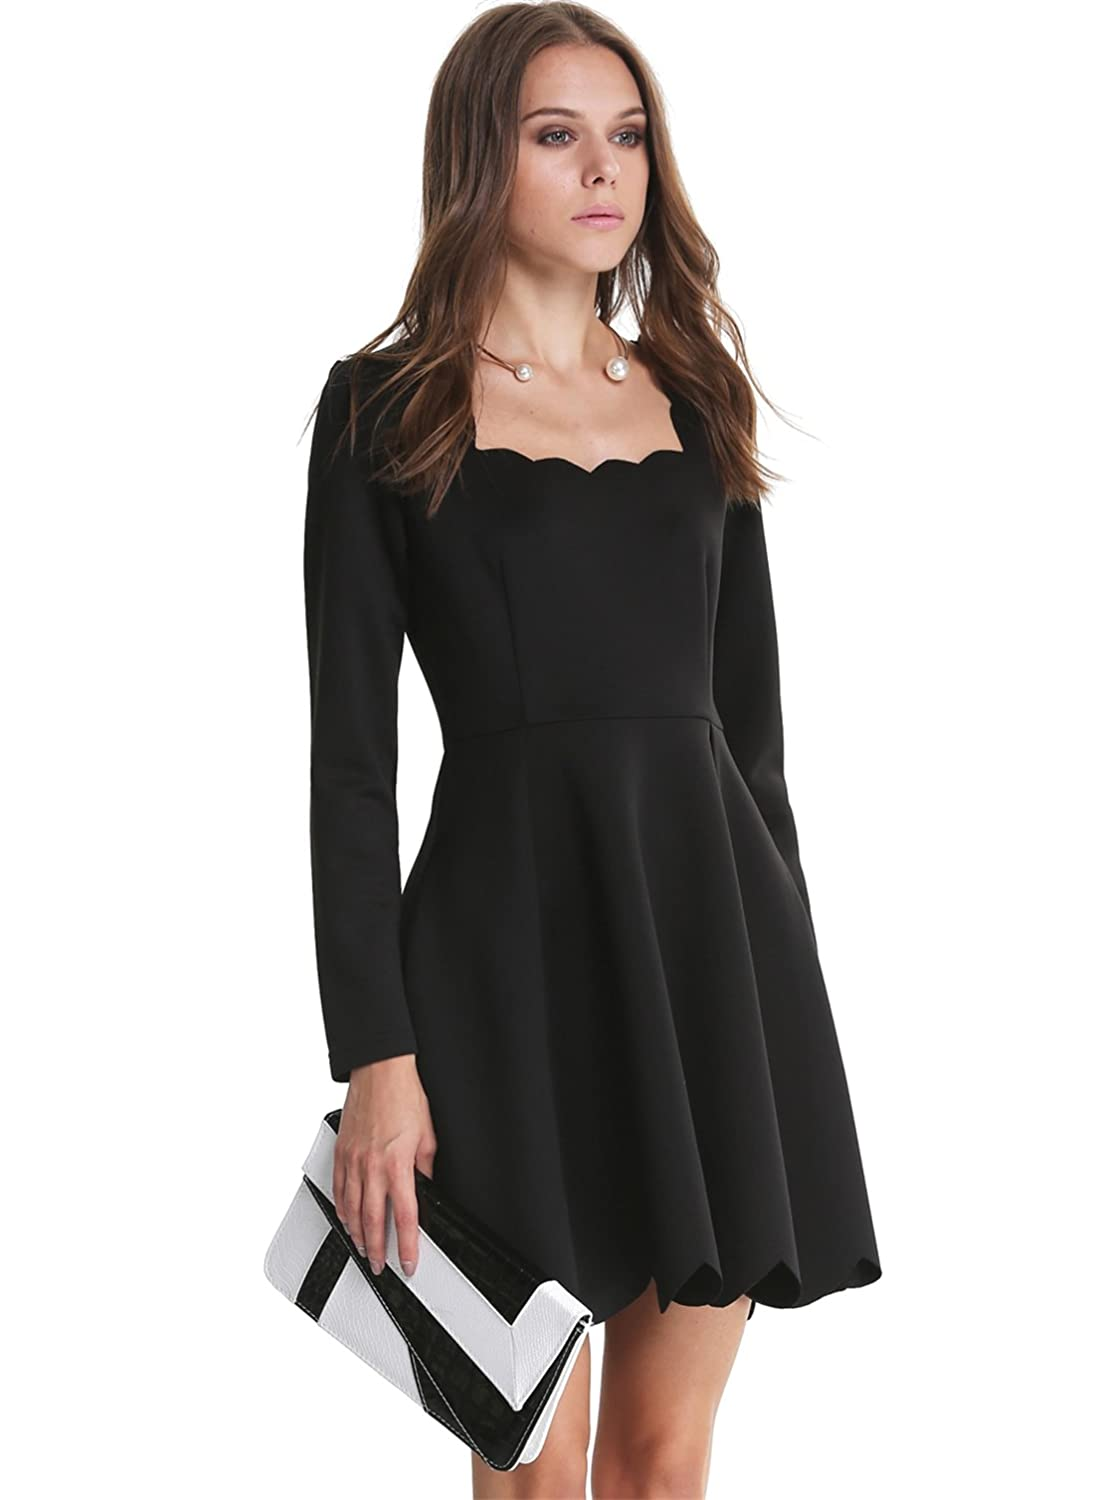 586a2eb584 Sheinside® Women's Black Long Sleeve Backless Scalloped Dress (Asian M,  Black): Amazon.co.uk: Clothing